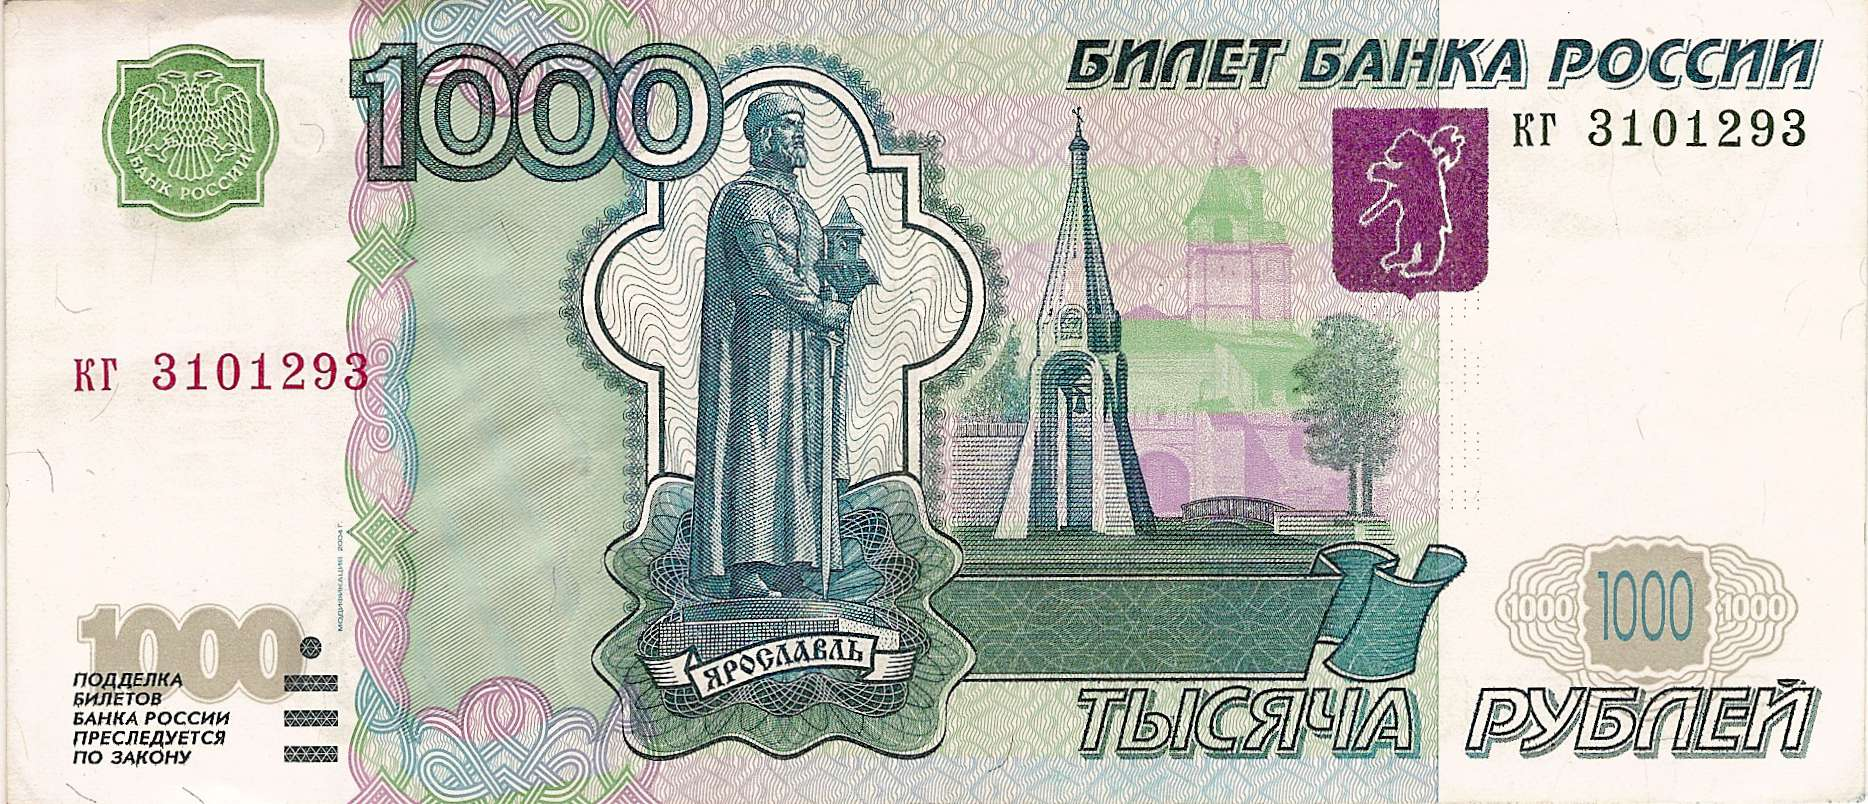 Usd to rubles toggolinode - 1